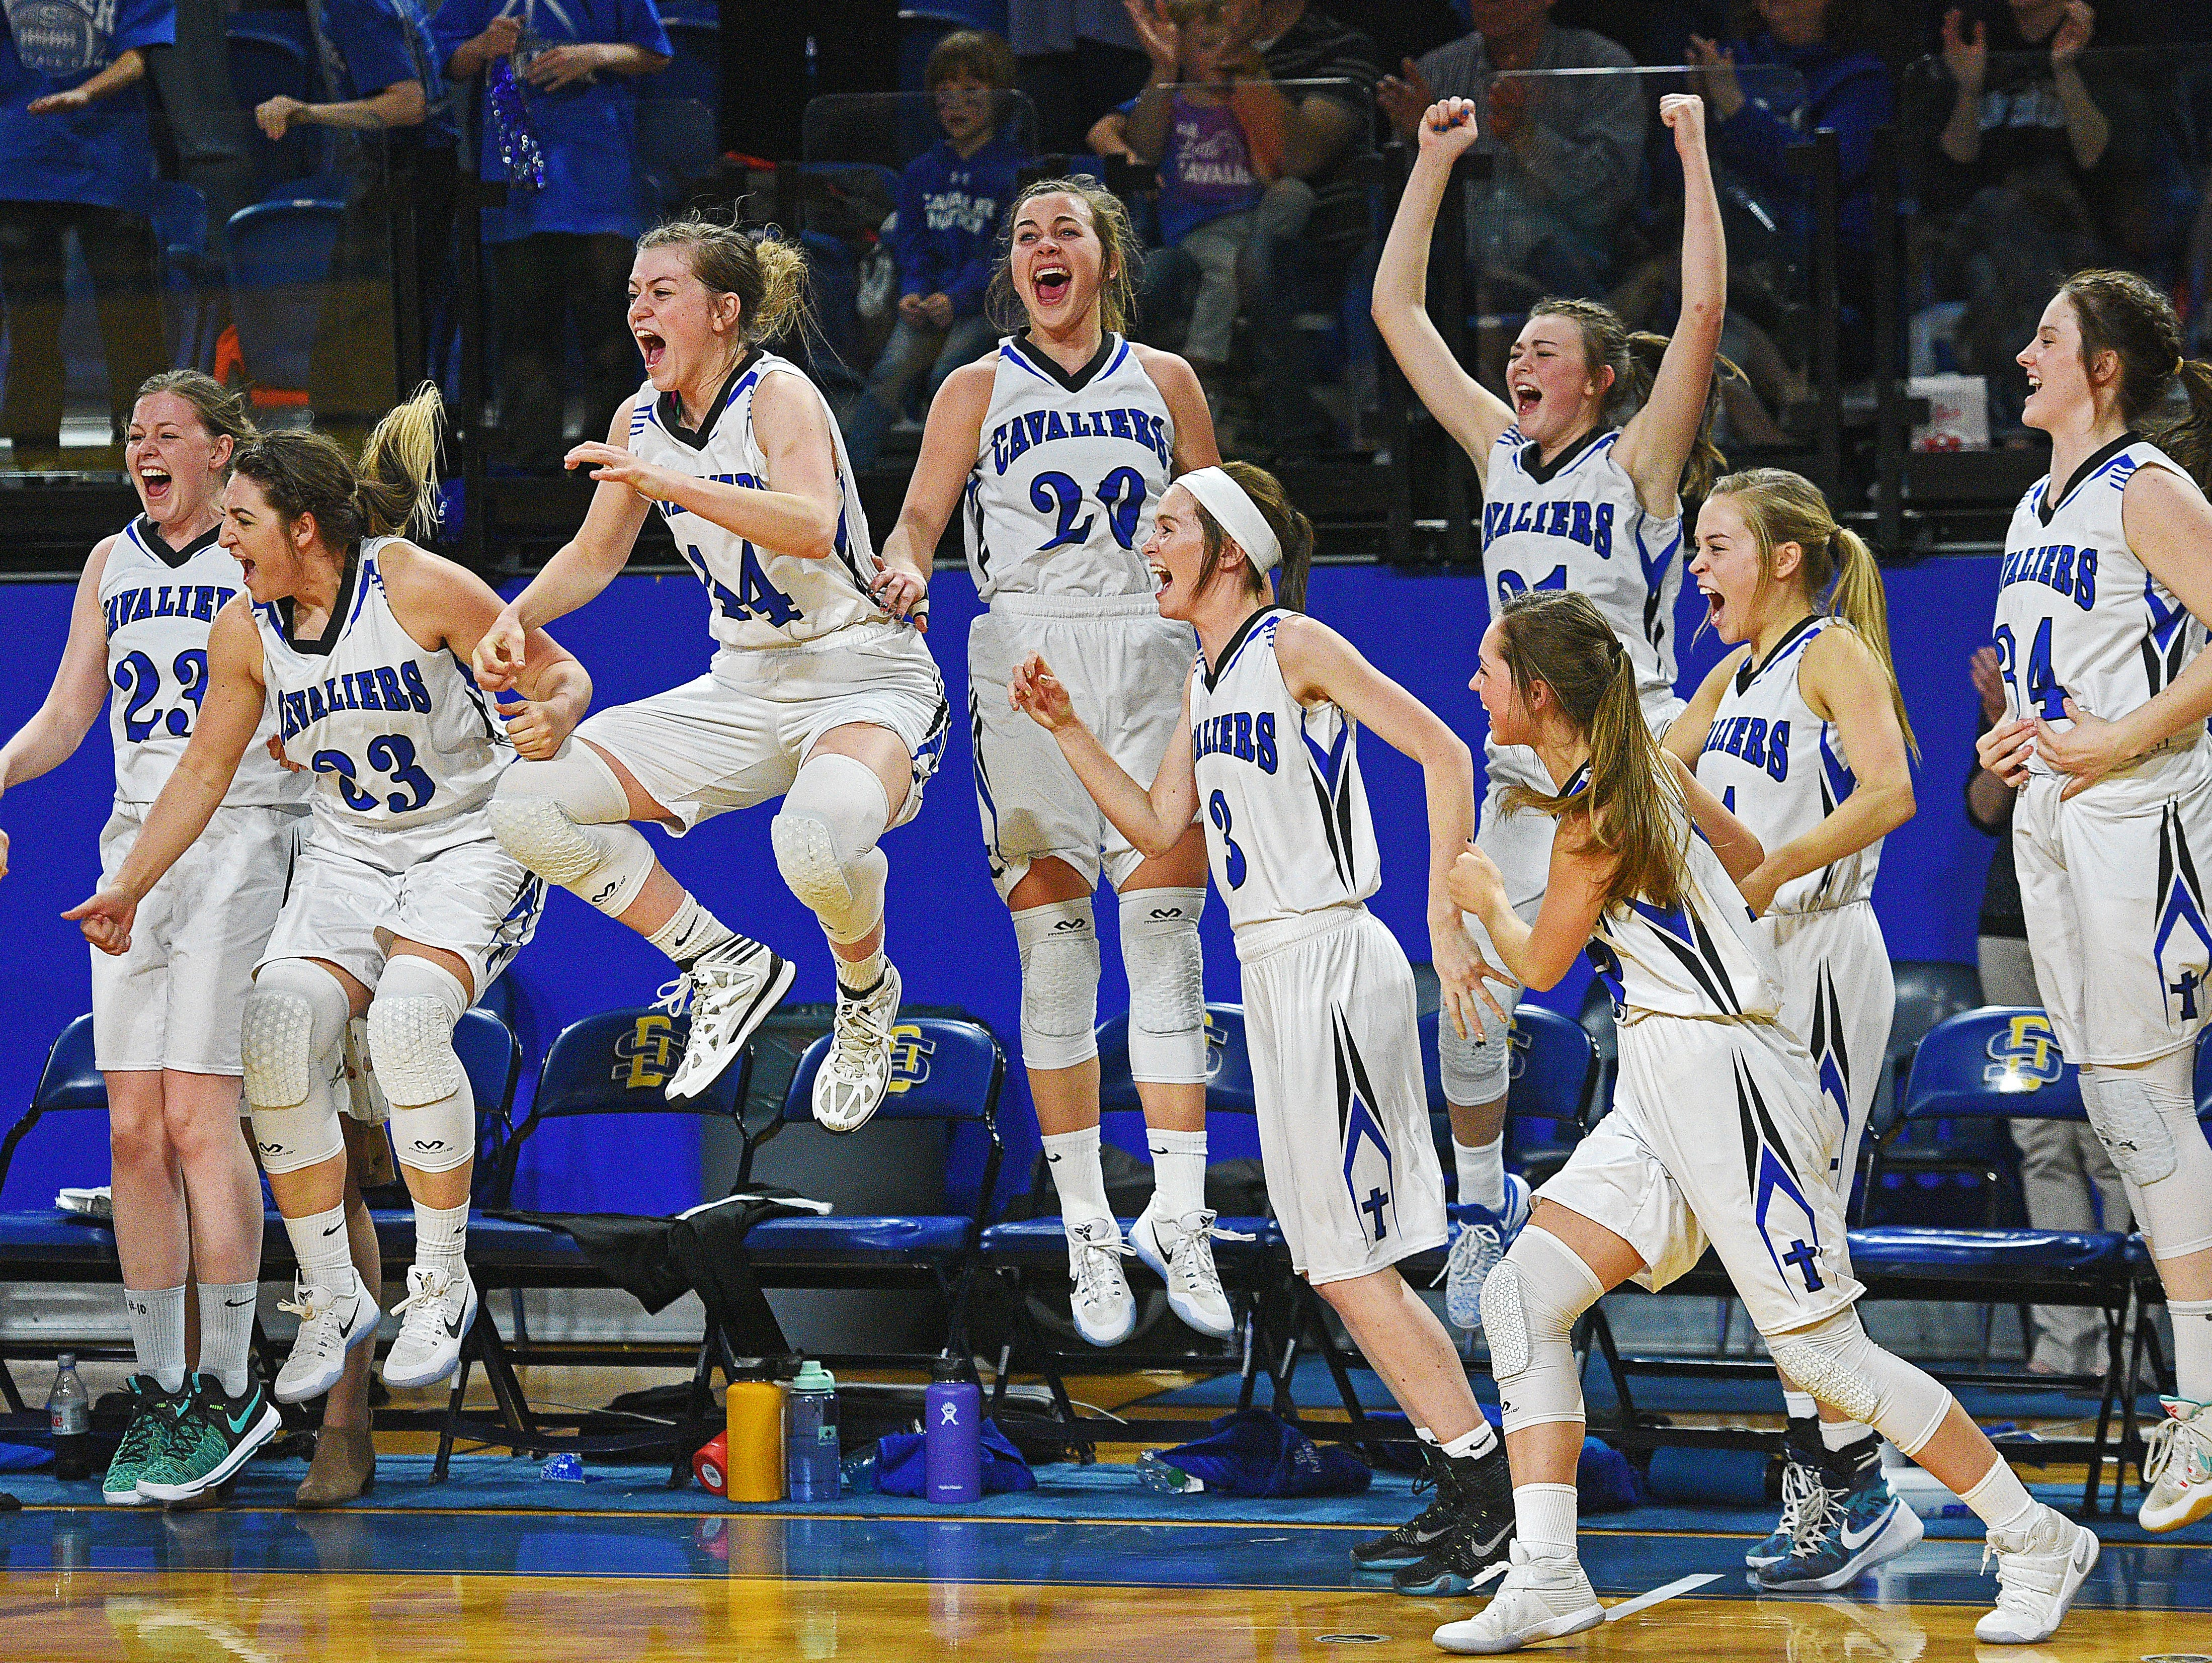 St. Thomas More players celebrate their 47-36 win over Lennox in the 2017 SDHSAA Class A State Girls Basketball Tournament championship game Saturday, March 11, 2017, at Frost Arena on the South Dakota State University campus in Brookings, S.D.